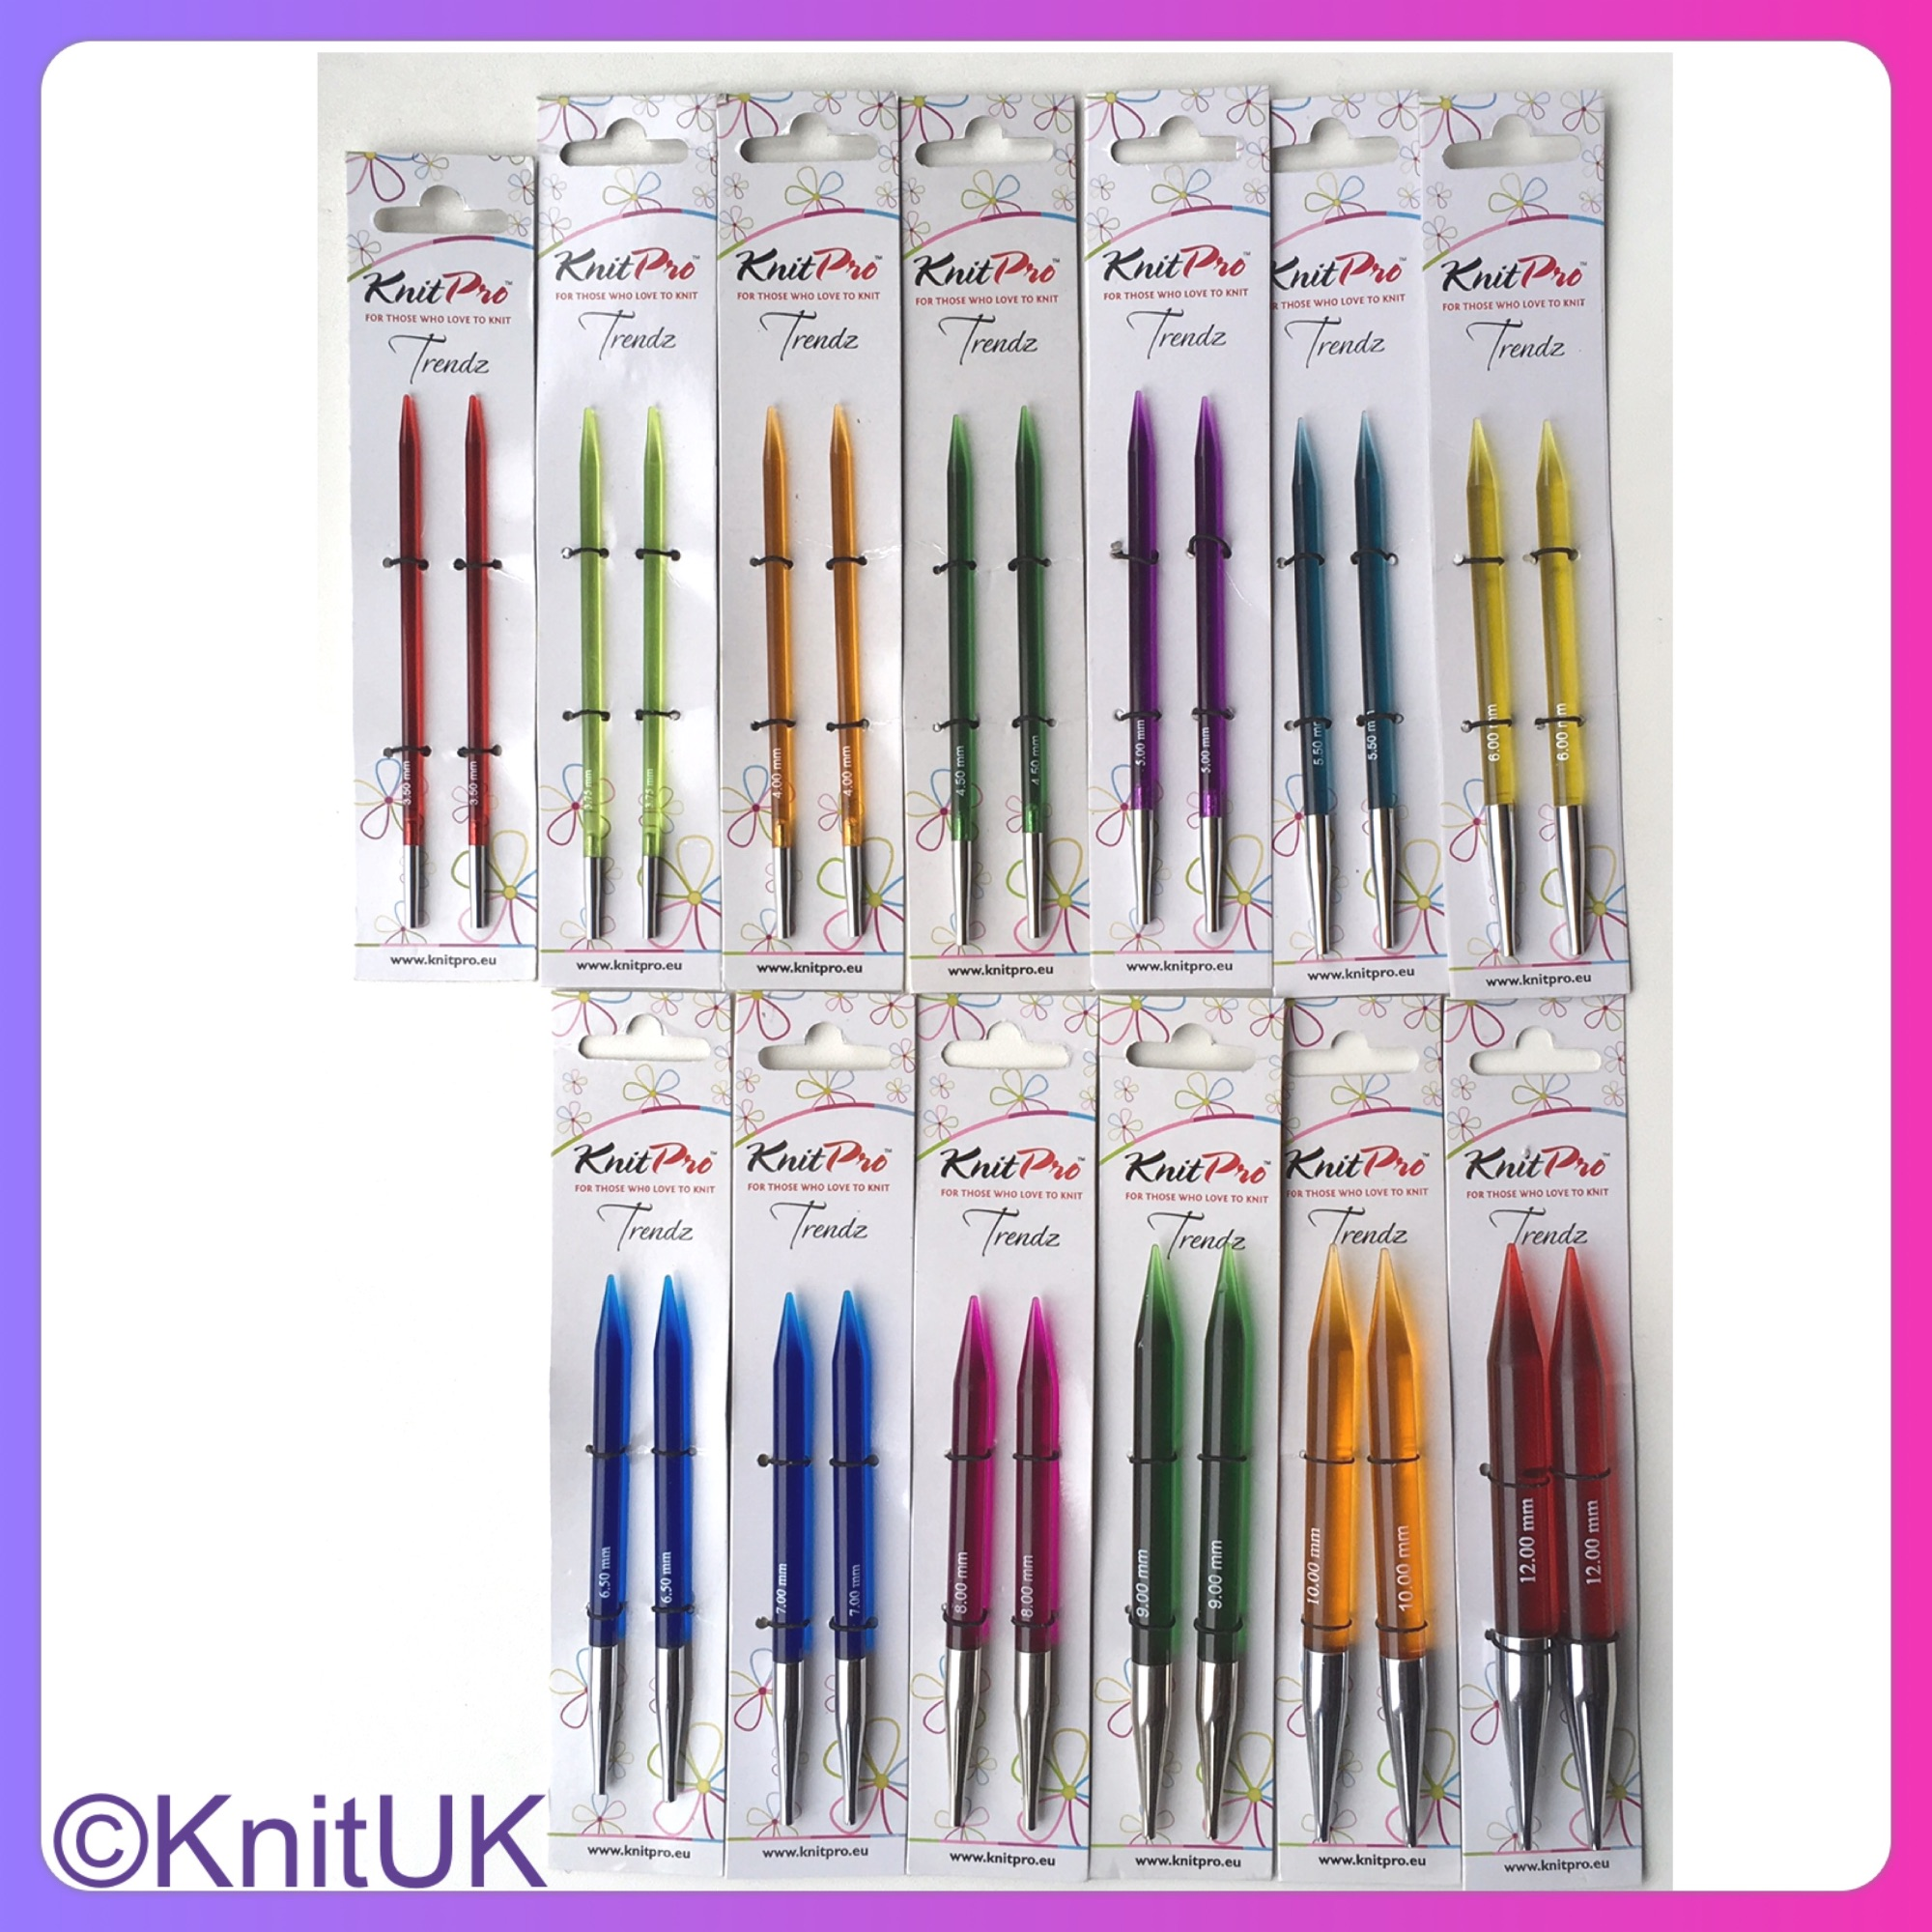 KnitPro Trendz interchangeable knitting needles sizes packaging